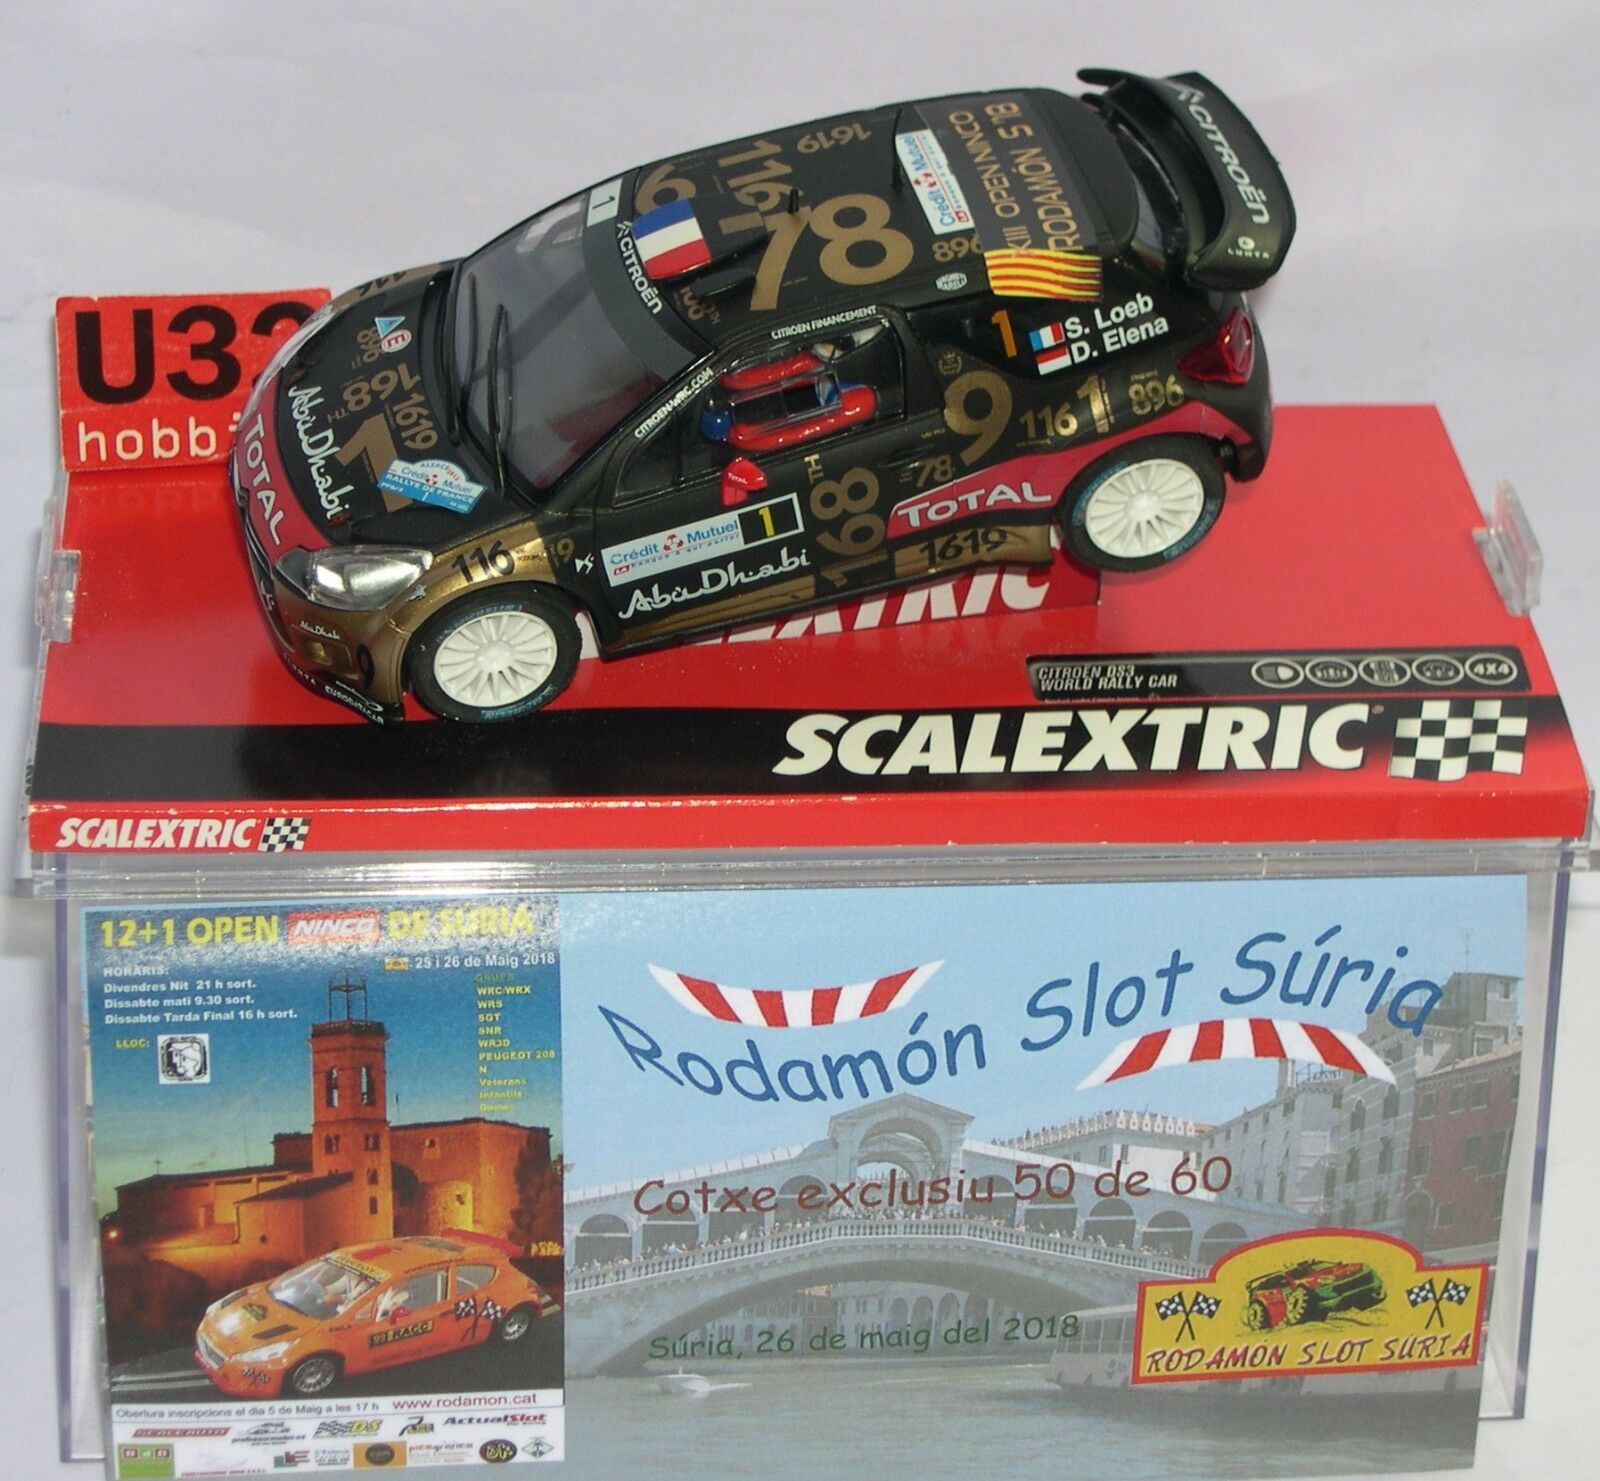 SCALEXTRIC CITROEN DS3 WRC 12+1 OPEN SURIA RODAMON SLOT 2018 OFF. DRIVERS